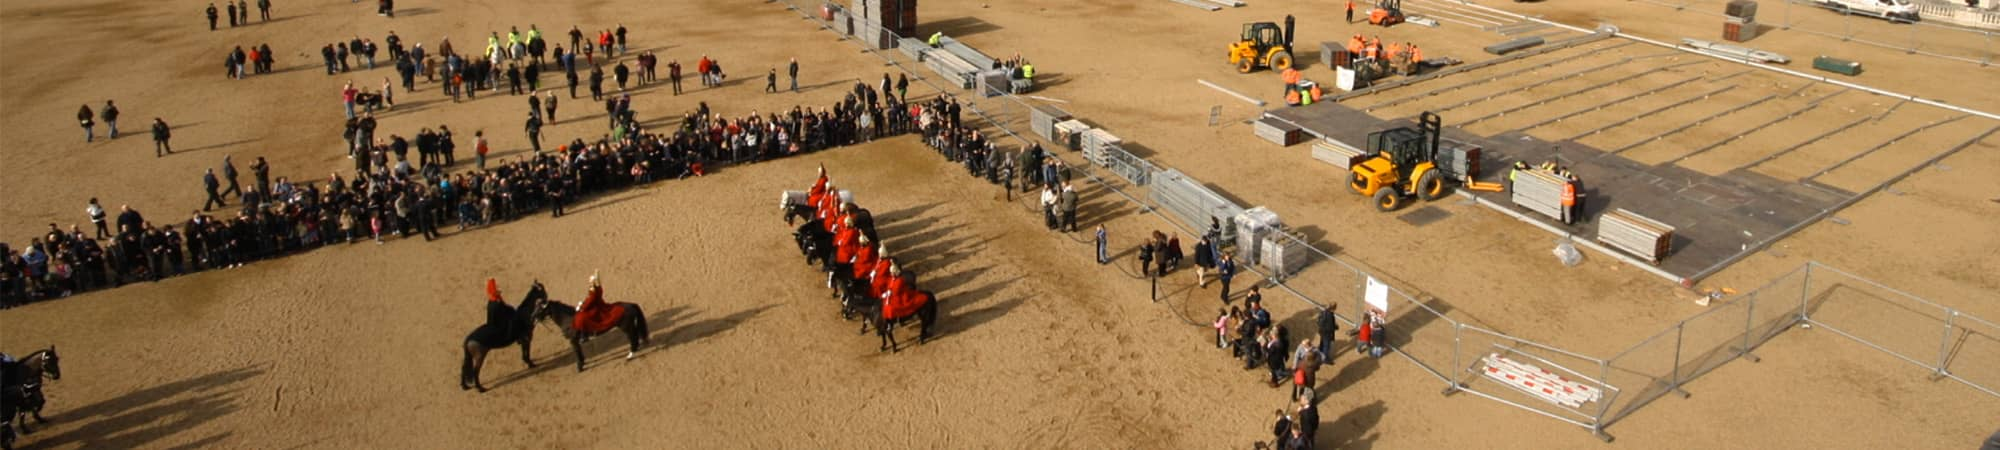 Event at Horse Guards Parade